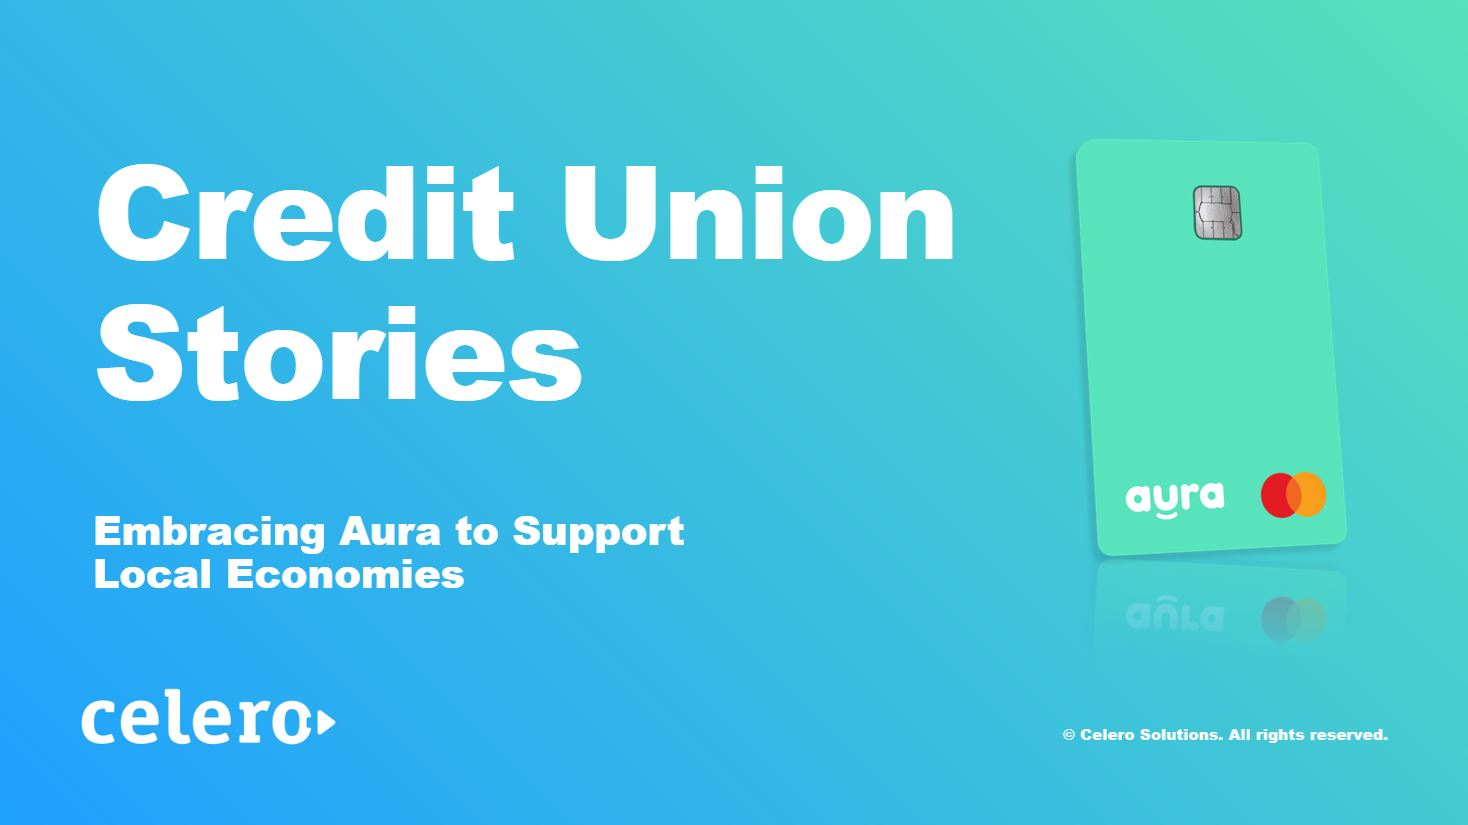 Credit Union Stories_ Embracing Aura to Support Local Economies (online-video-cutter.com)